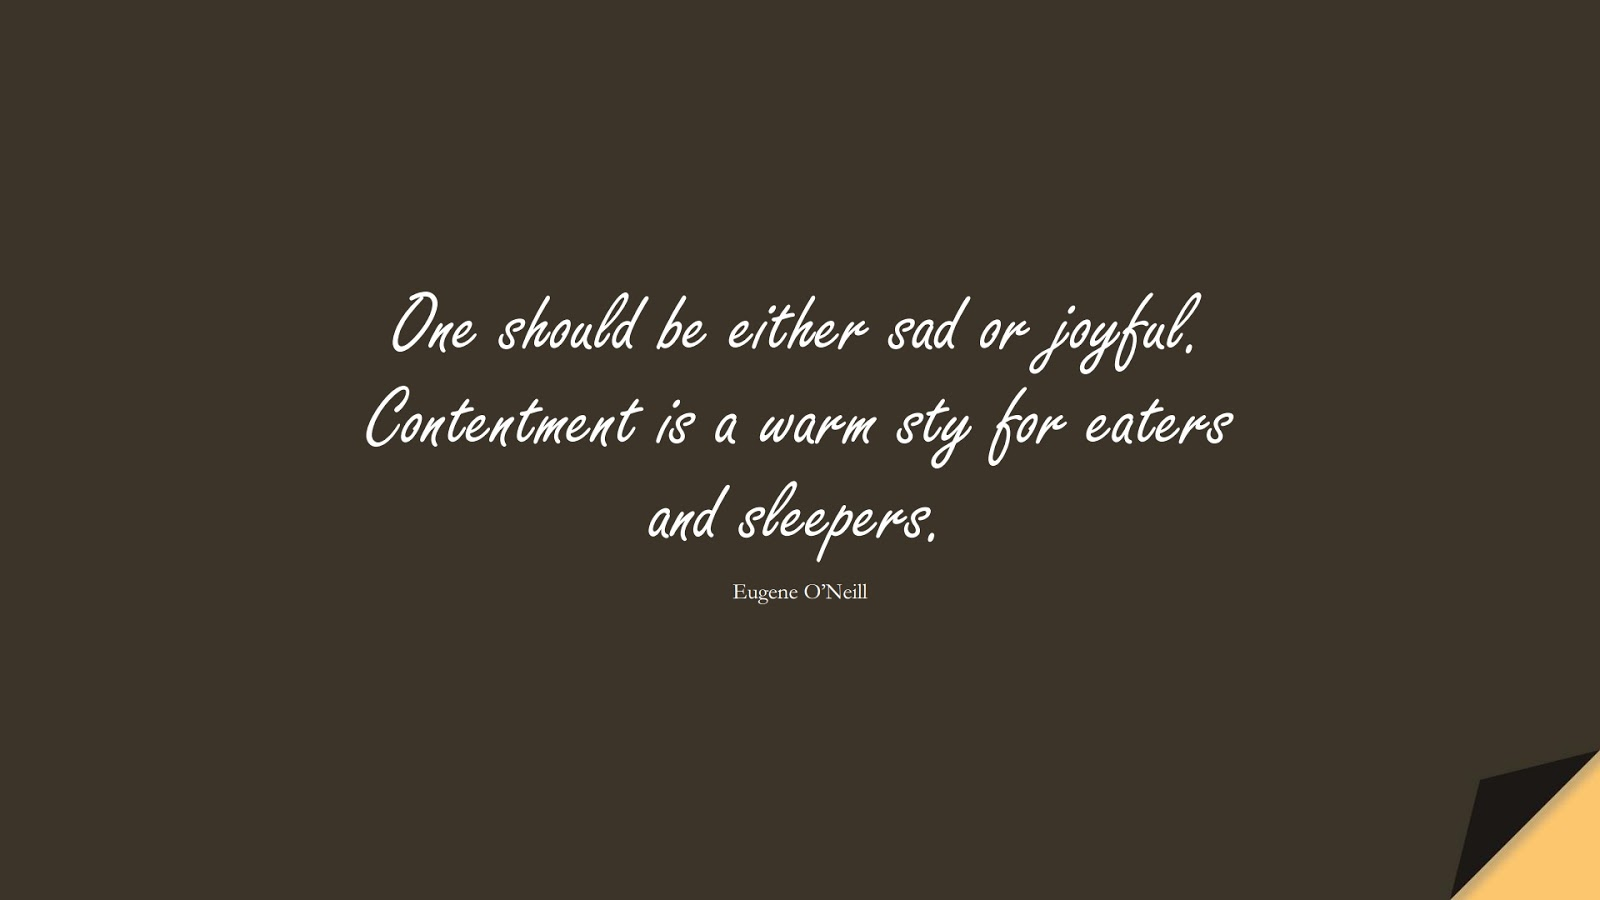 One should be either sad or joyful. Contentment is a warm sty for eaters and sleepers. (Eugene O'Neill);  #HappinessQuotes